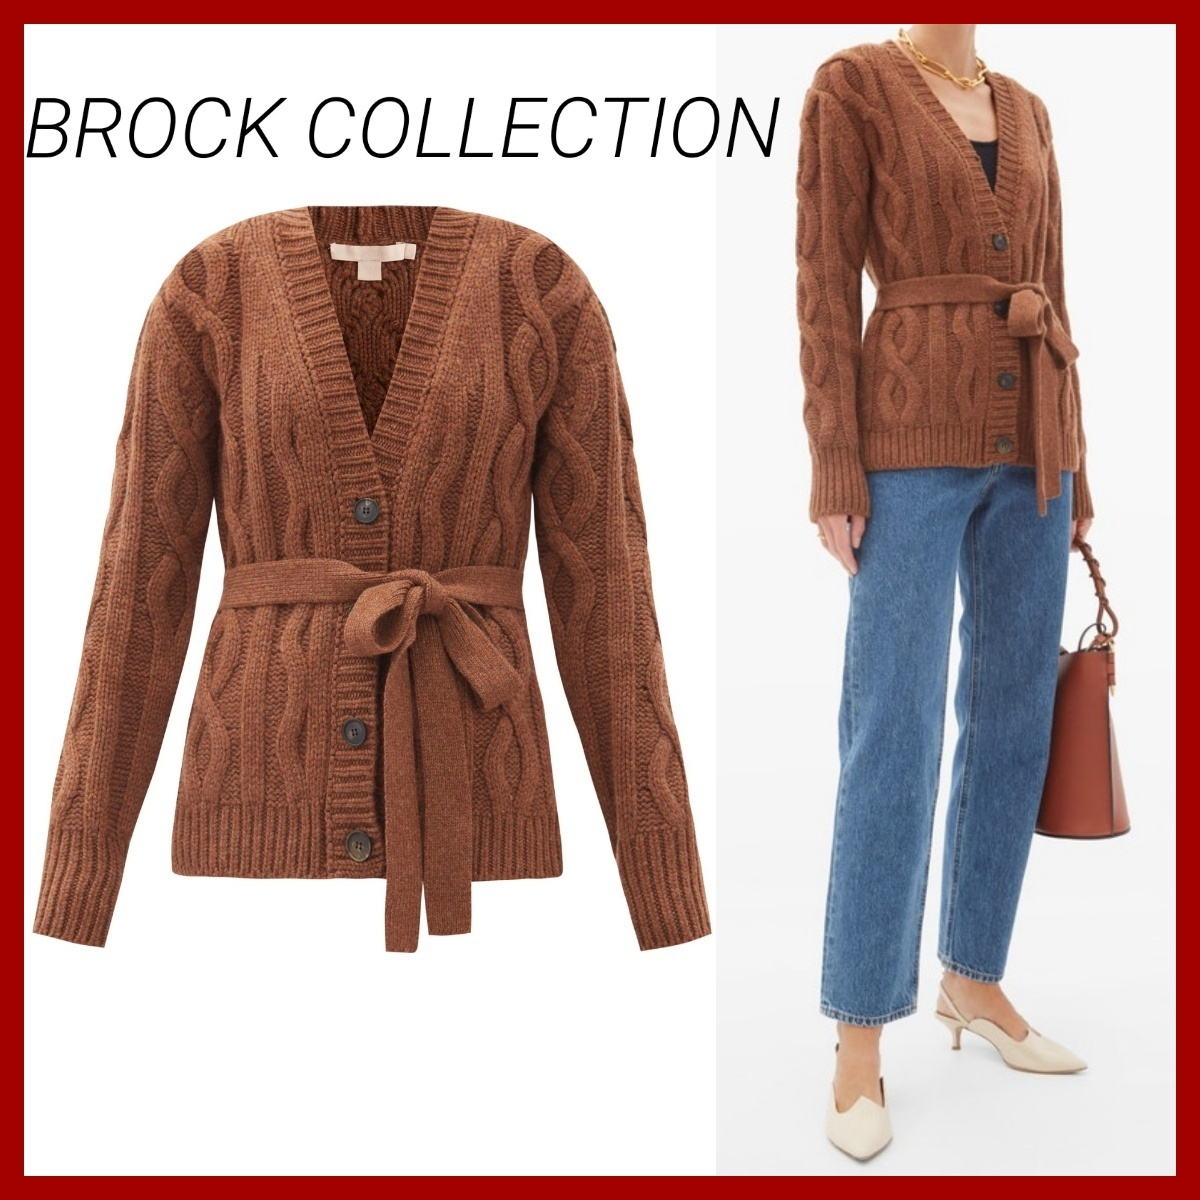 BROCK COLLECTION☆ケーブルニットカシミア カーディガン (BROCK COLLECTION/カーディガン) 1378773